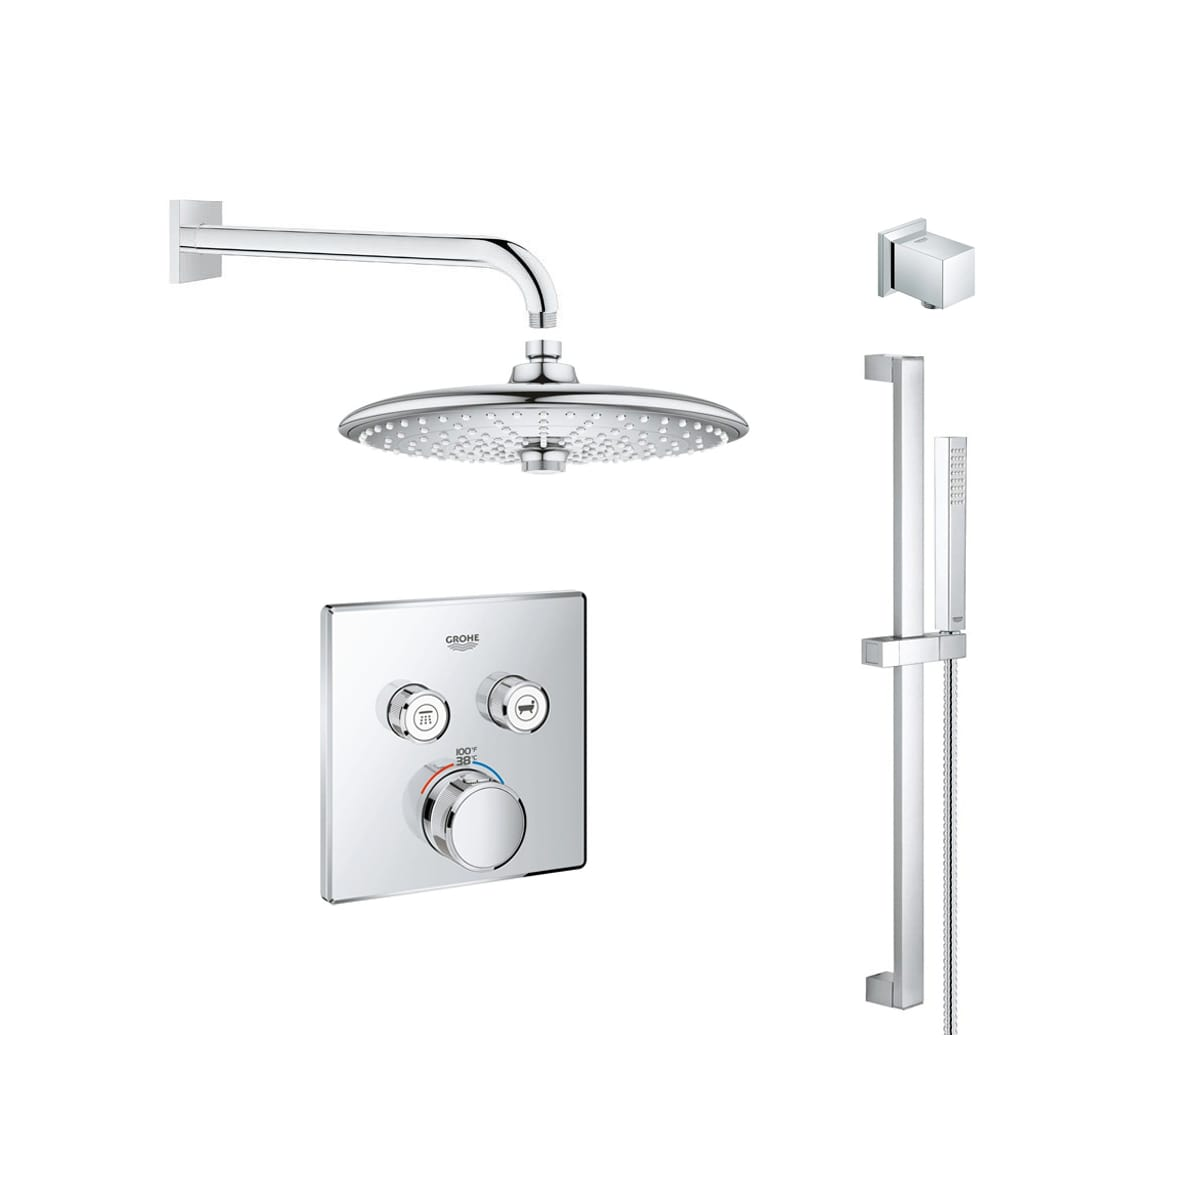 Grohe Gss Grohtherm Sq 04